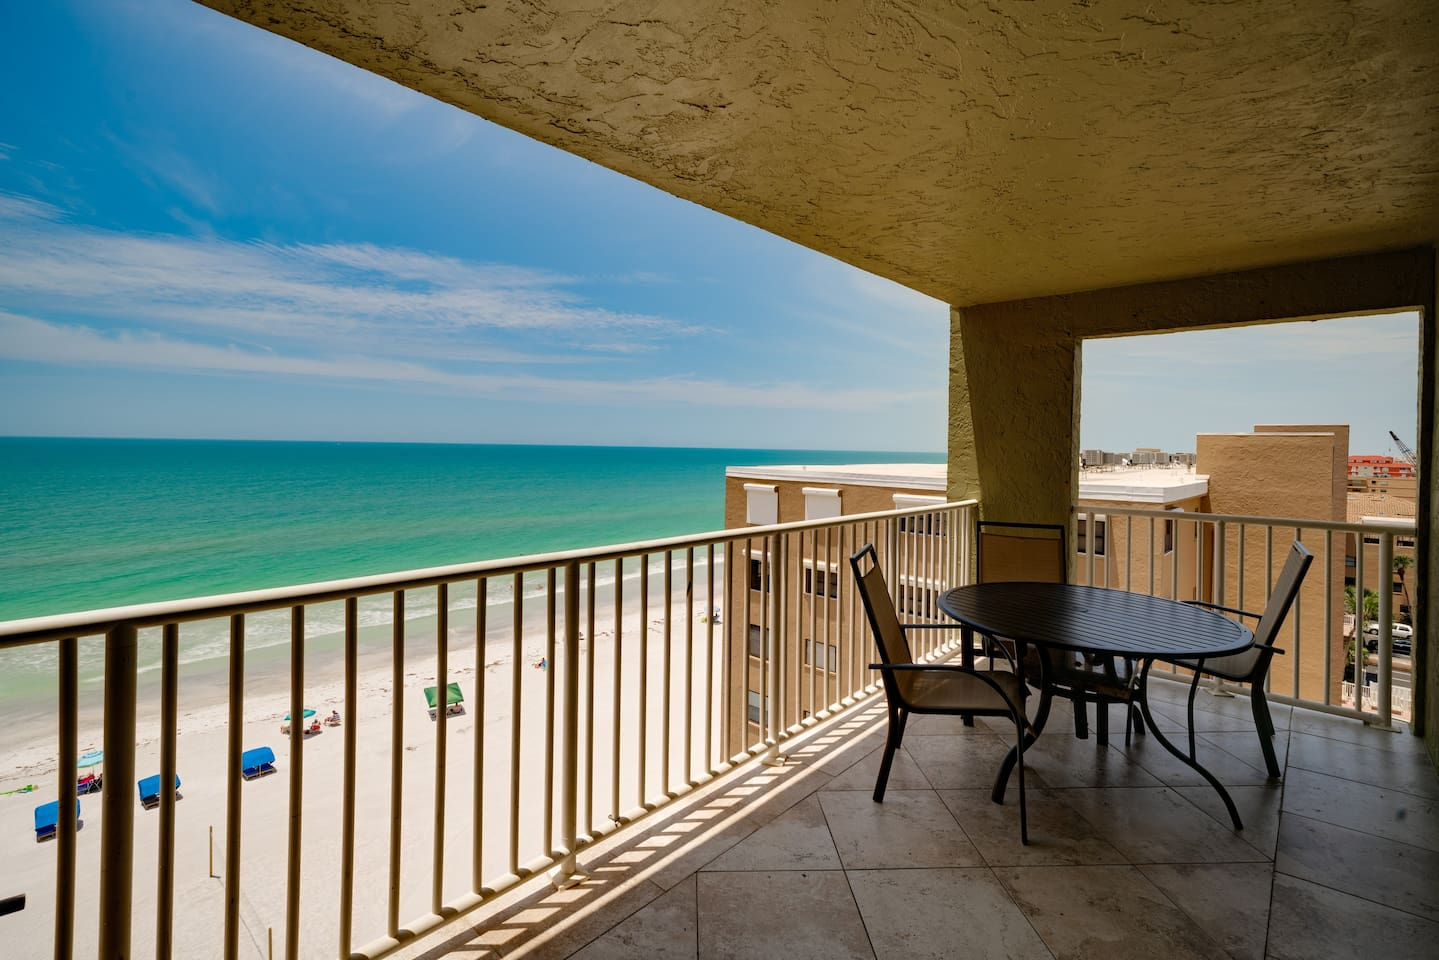 7th floor unit with an amazing beachfront view of the Gulf Coast Beaches of Florida